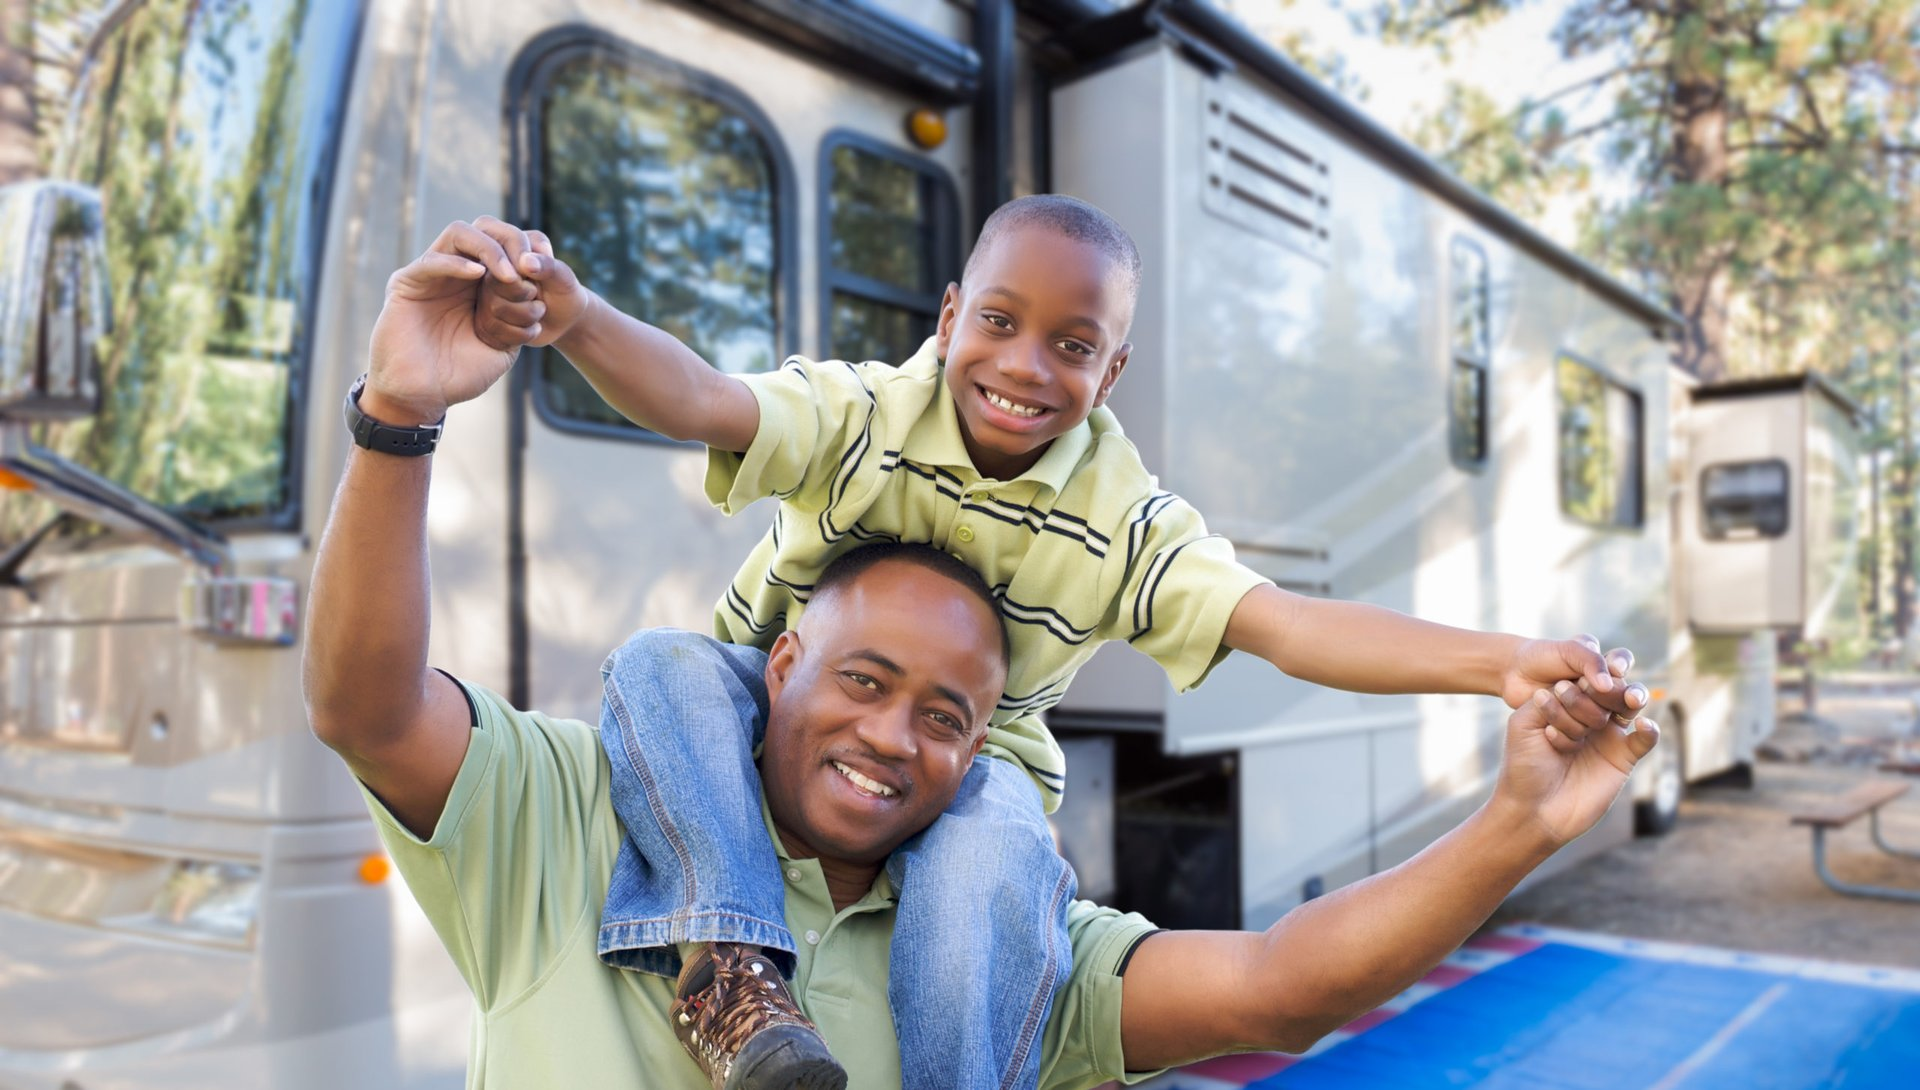 Family traveling by RV